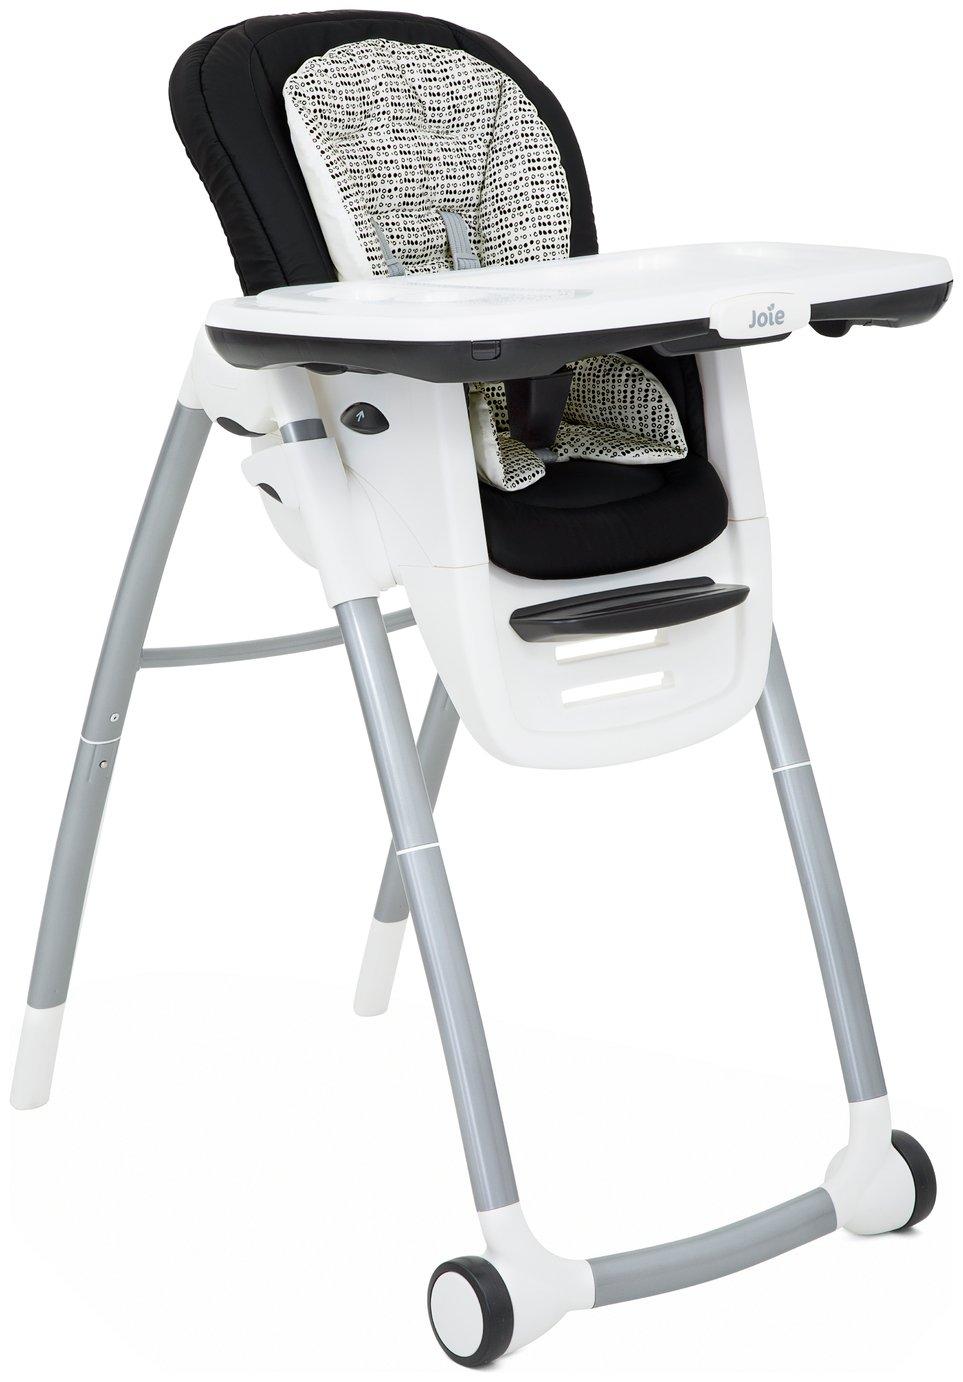 Joie Multiply Highchair - Dots